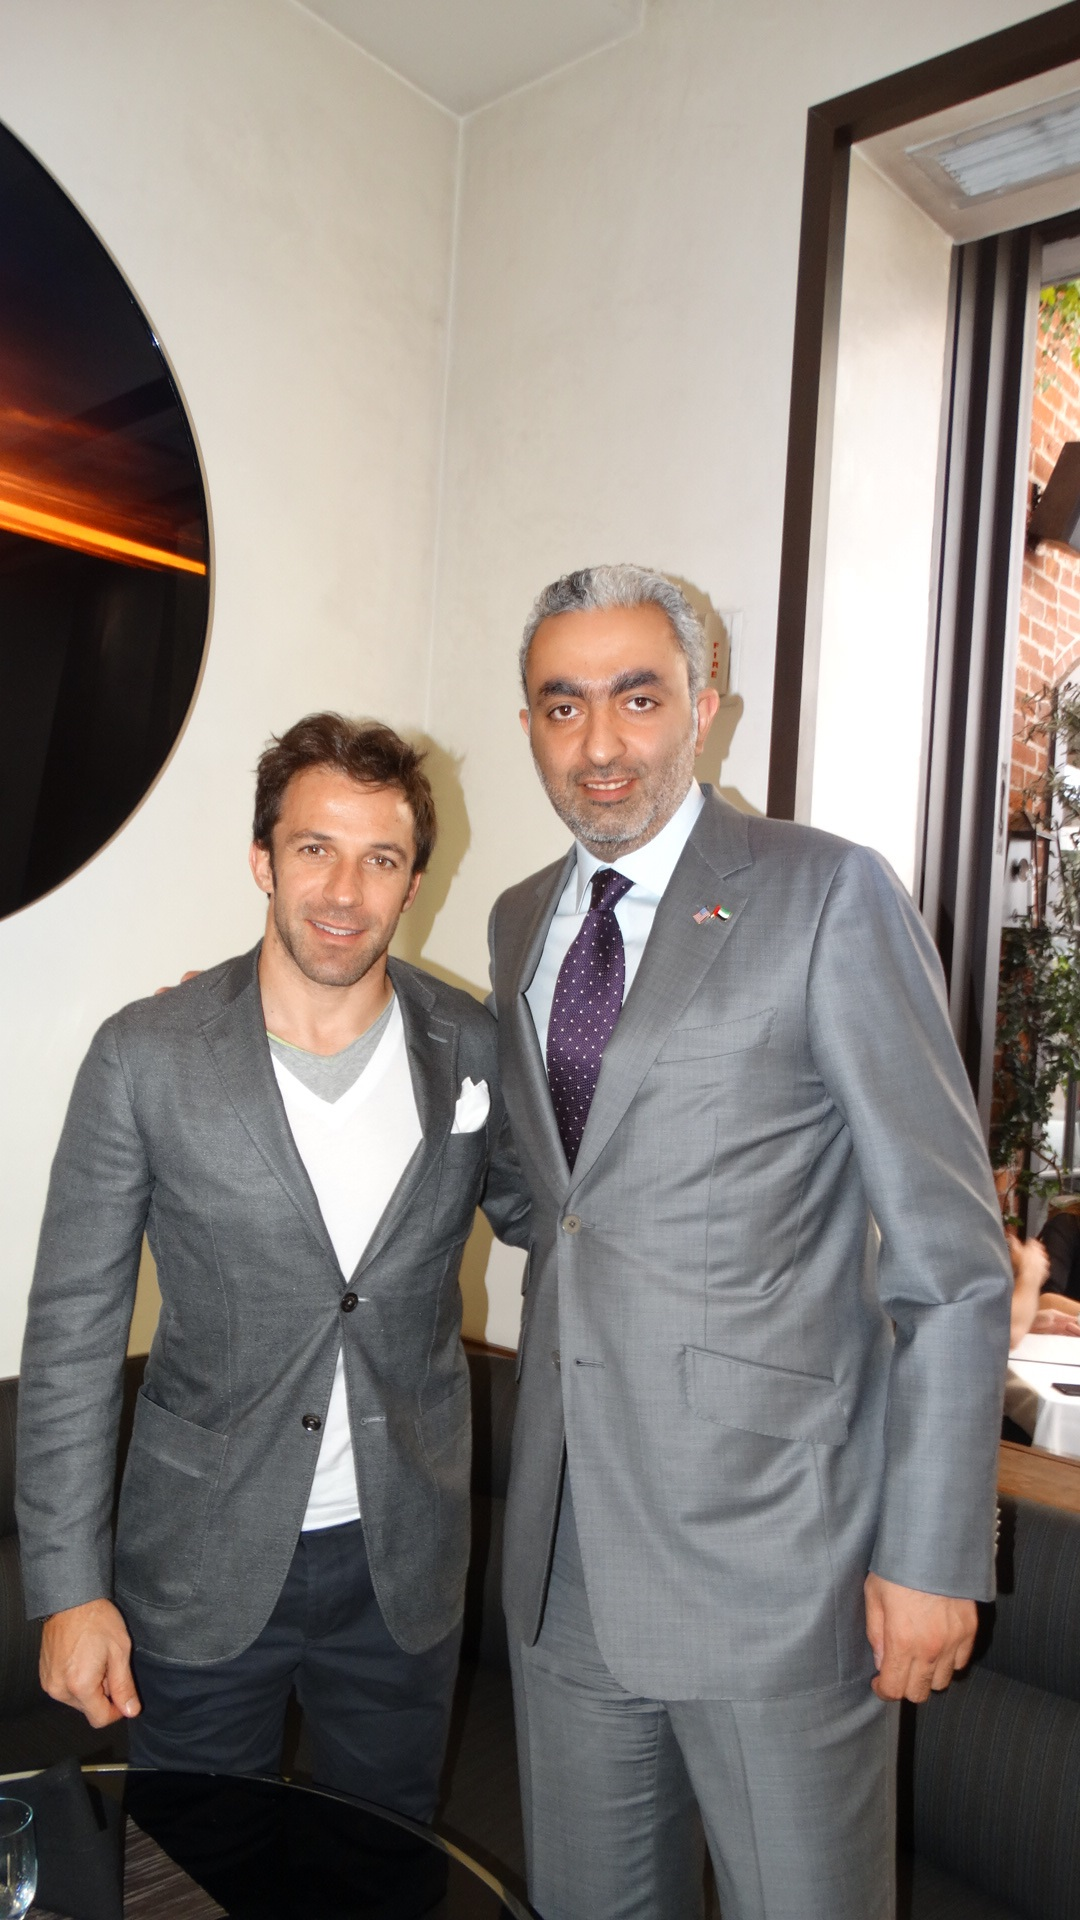 imgRAK FTZ Chairman meets with Alessandro Del Piero, Italian football player